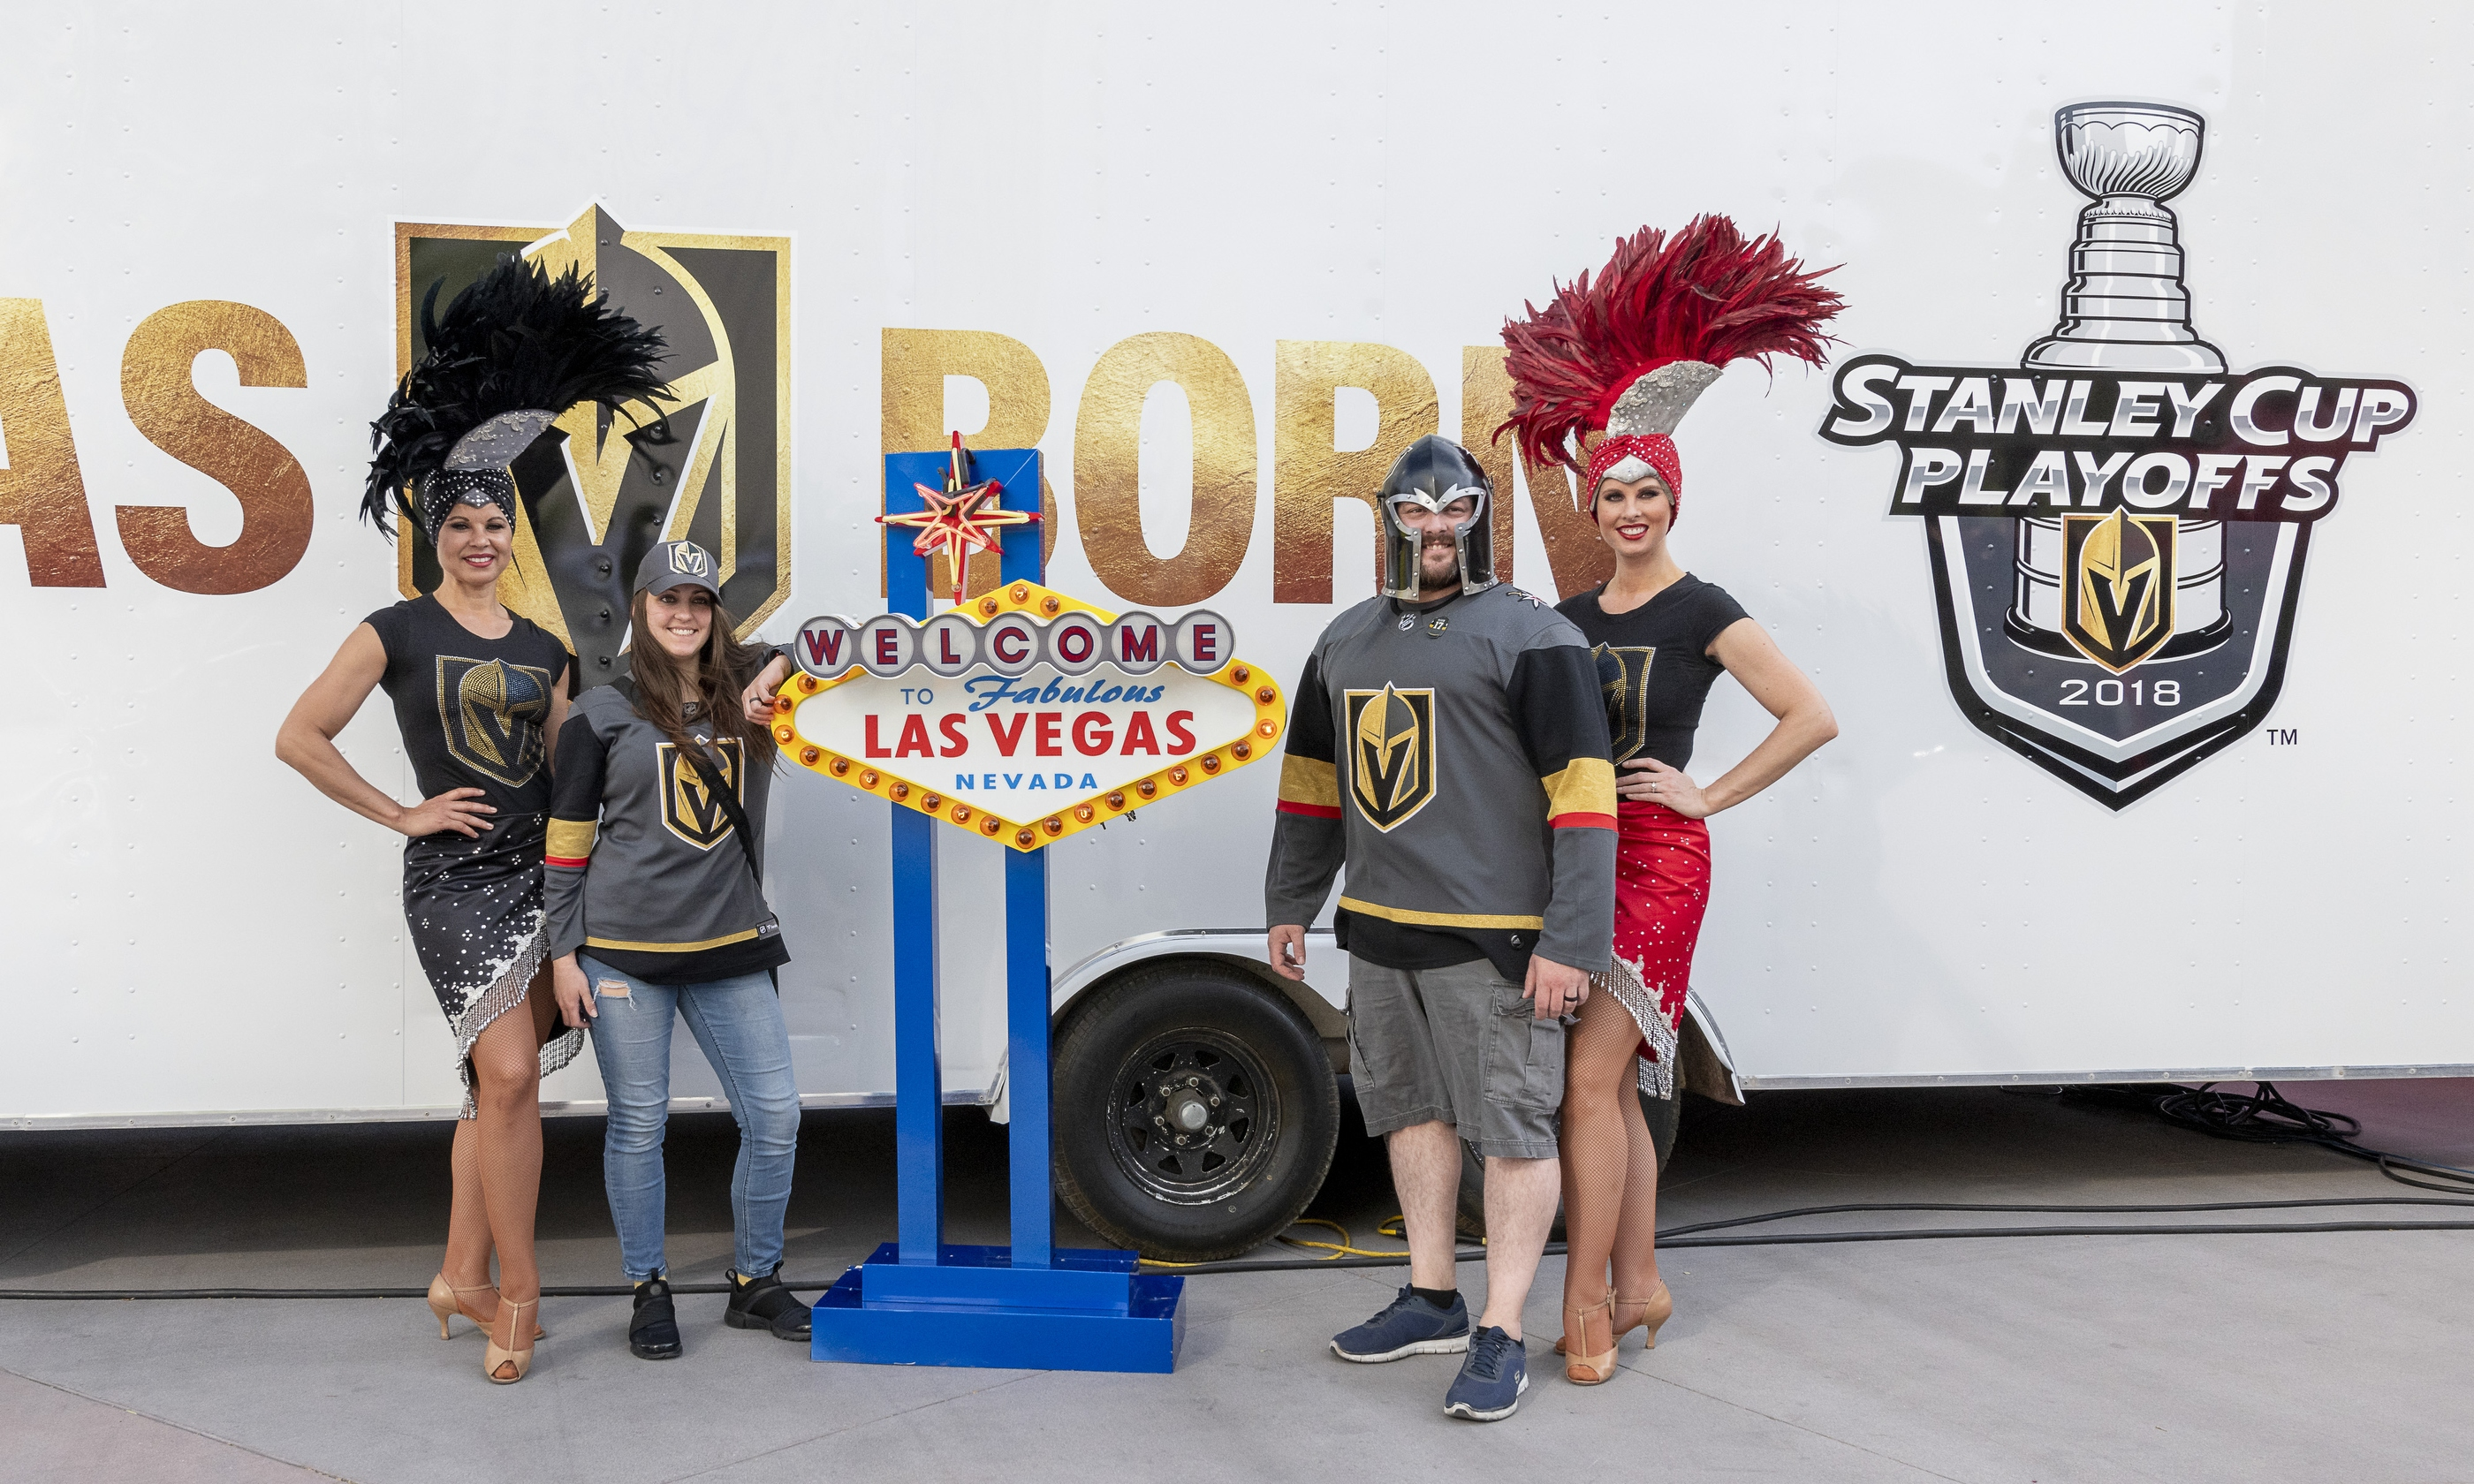 Showgirls pose for photos with fans as part of the pre-game celebration in Toshiba Plaza as the Vegas Golden Knights prepare to meet the Los Angeles Kings in the first quarterfinal game of the NHL Stanley Cup Playoffs at T-Mobile Arena in Las Vegas on Wednesday, April 11, 2018.  CREDIT: Mark Damon/Las Vegas News Bureau